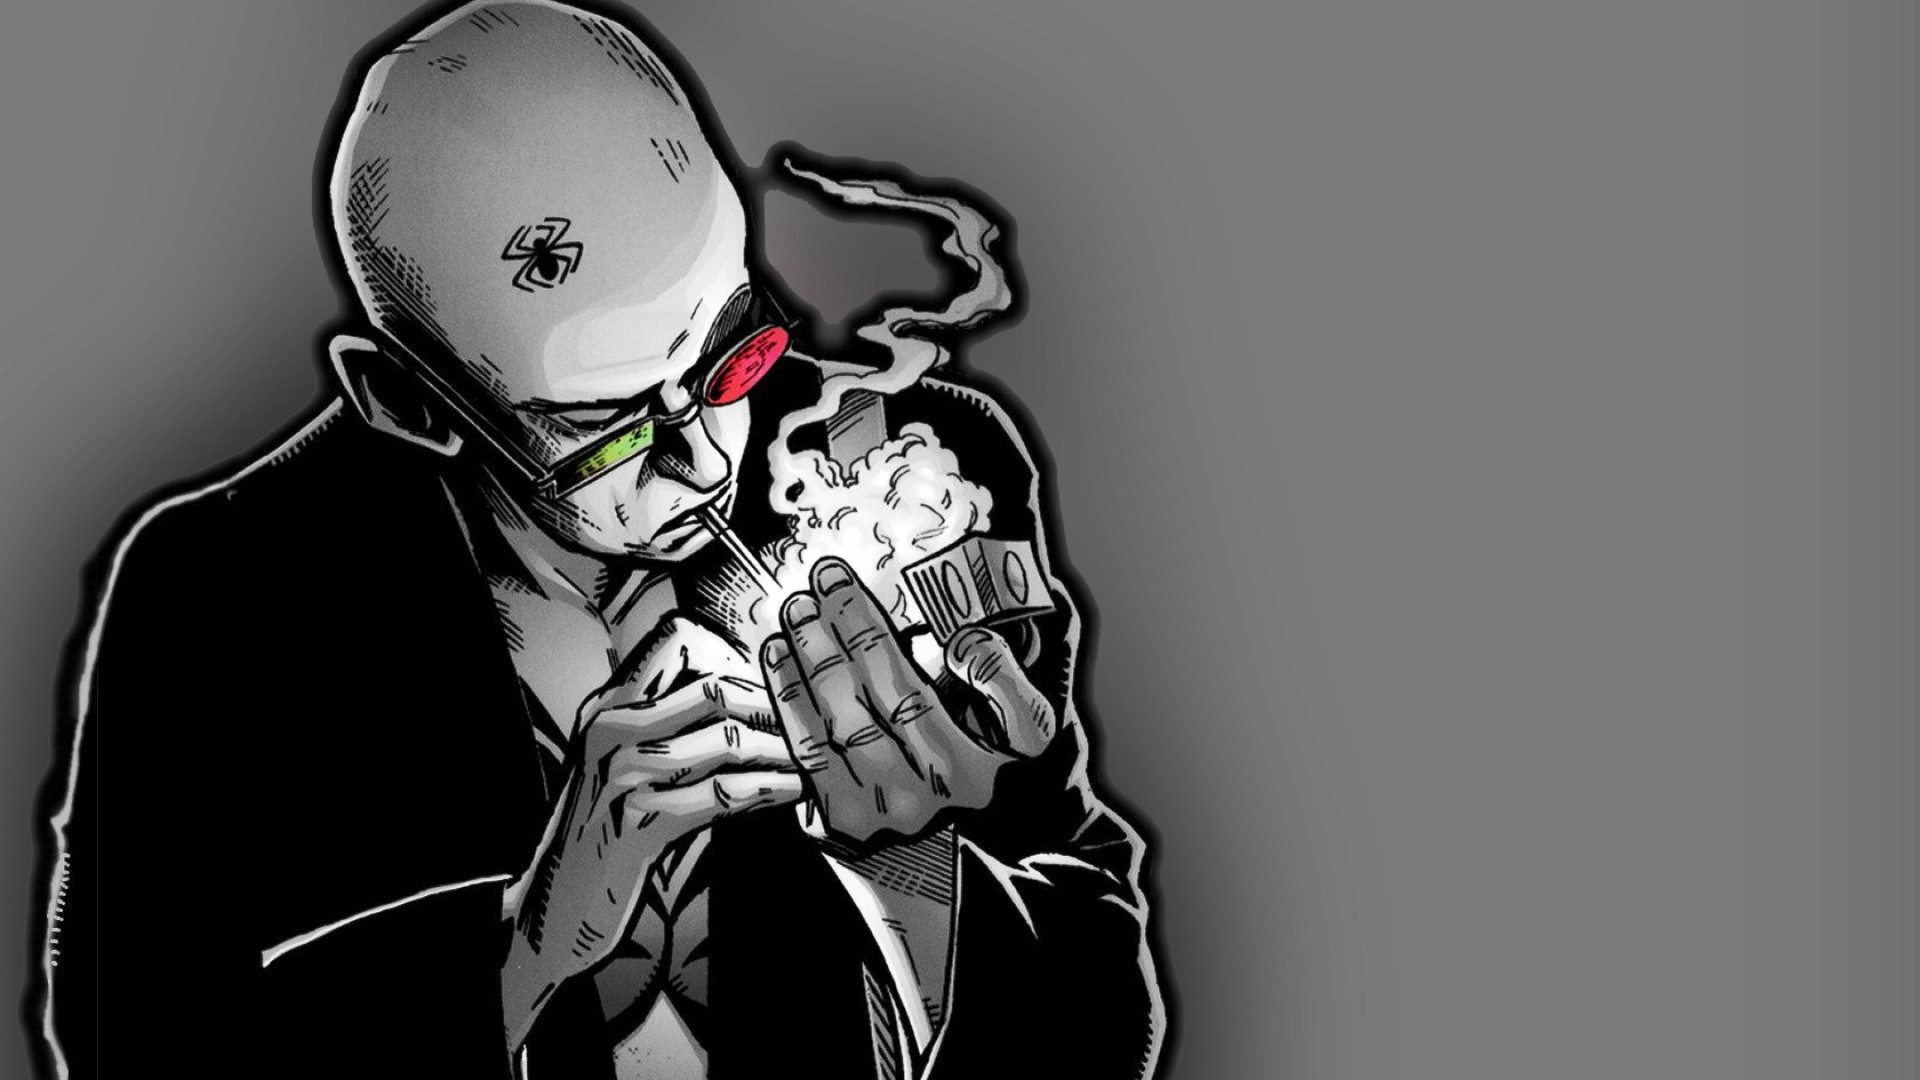 1920x1080 gangster cartoons hd wallpaper of gangster cartoon desktop wallpaper gangster cartoon